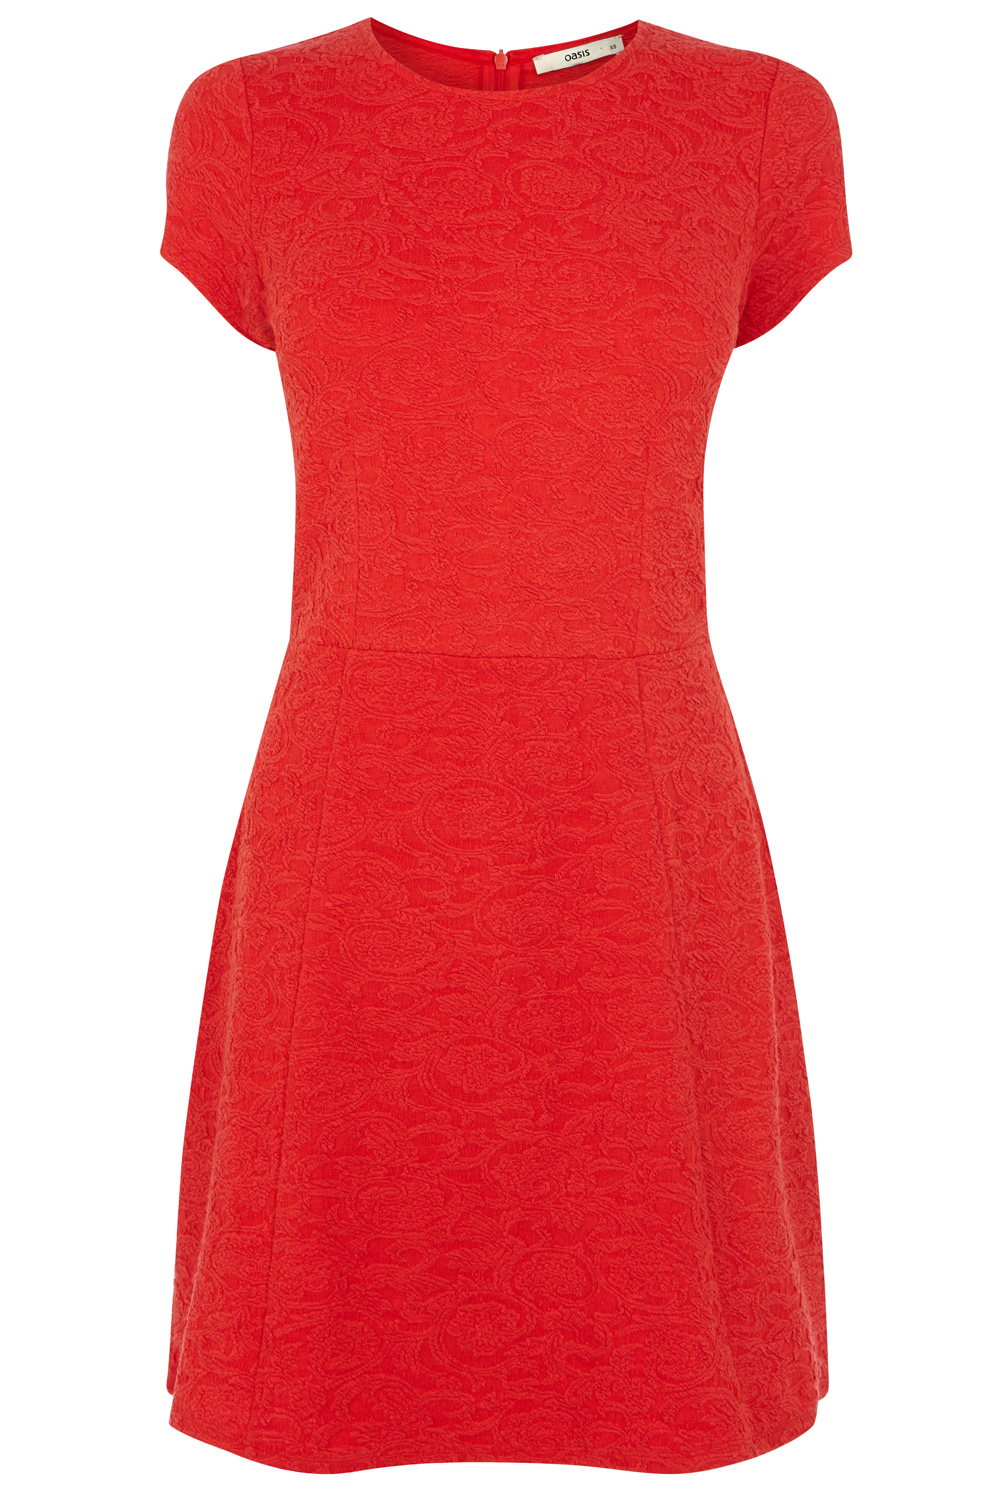 Textured Jacquard Skater Dress | Red | Oasis Stores